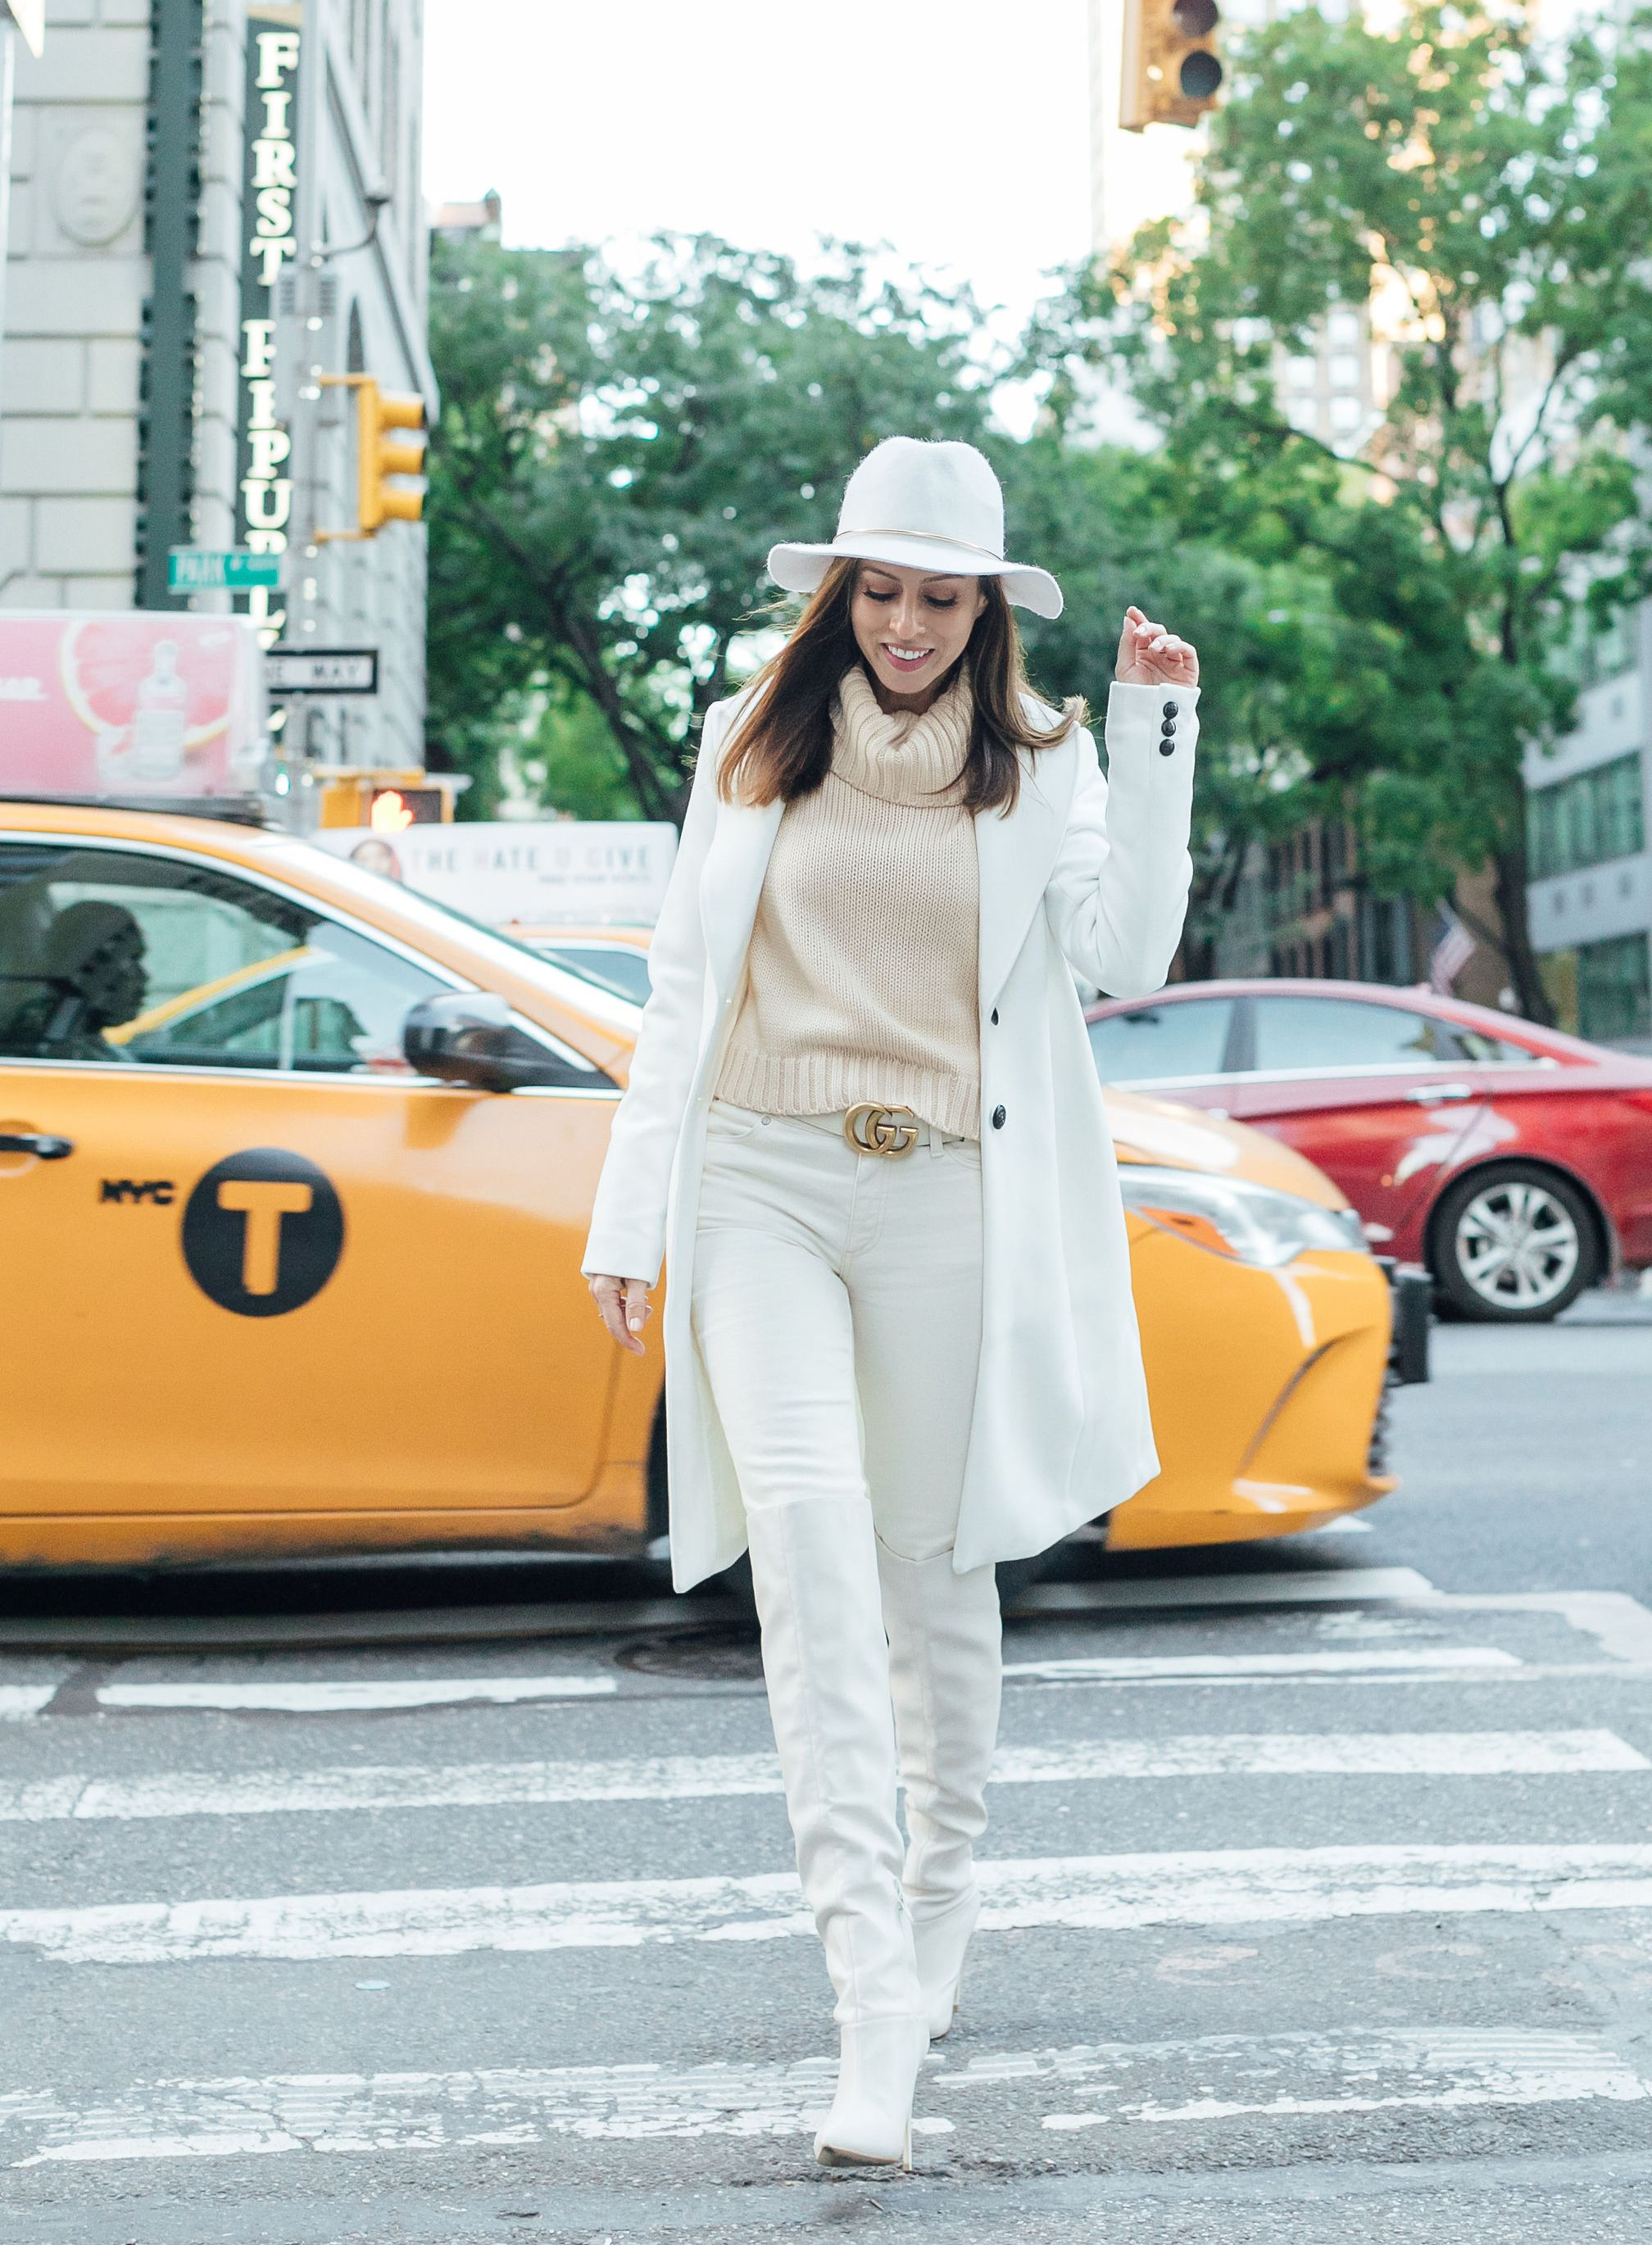 e393822d7102d3 Sydne Style shows how to wear winter white with white jeans in new york  city